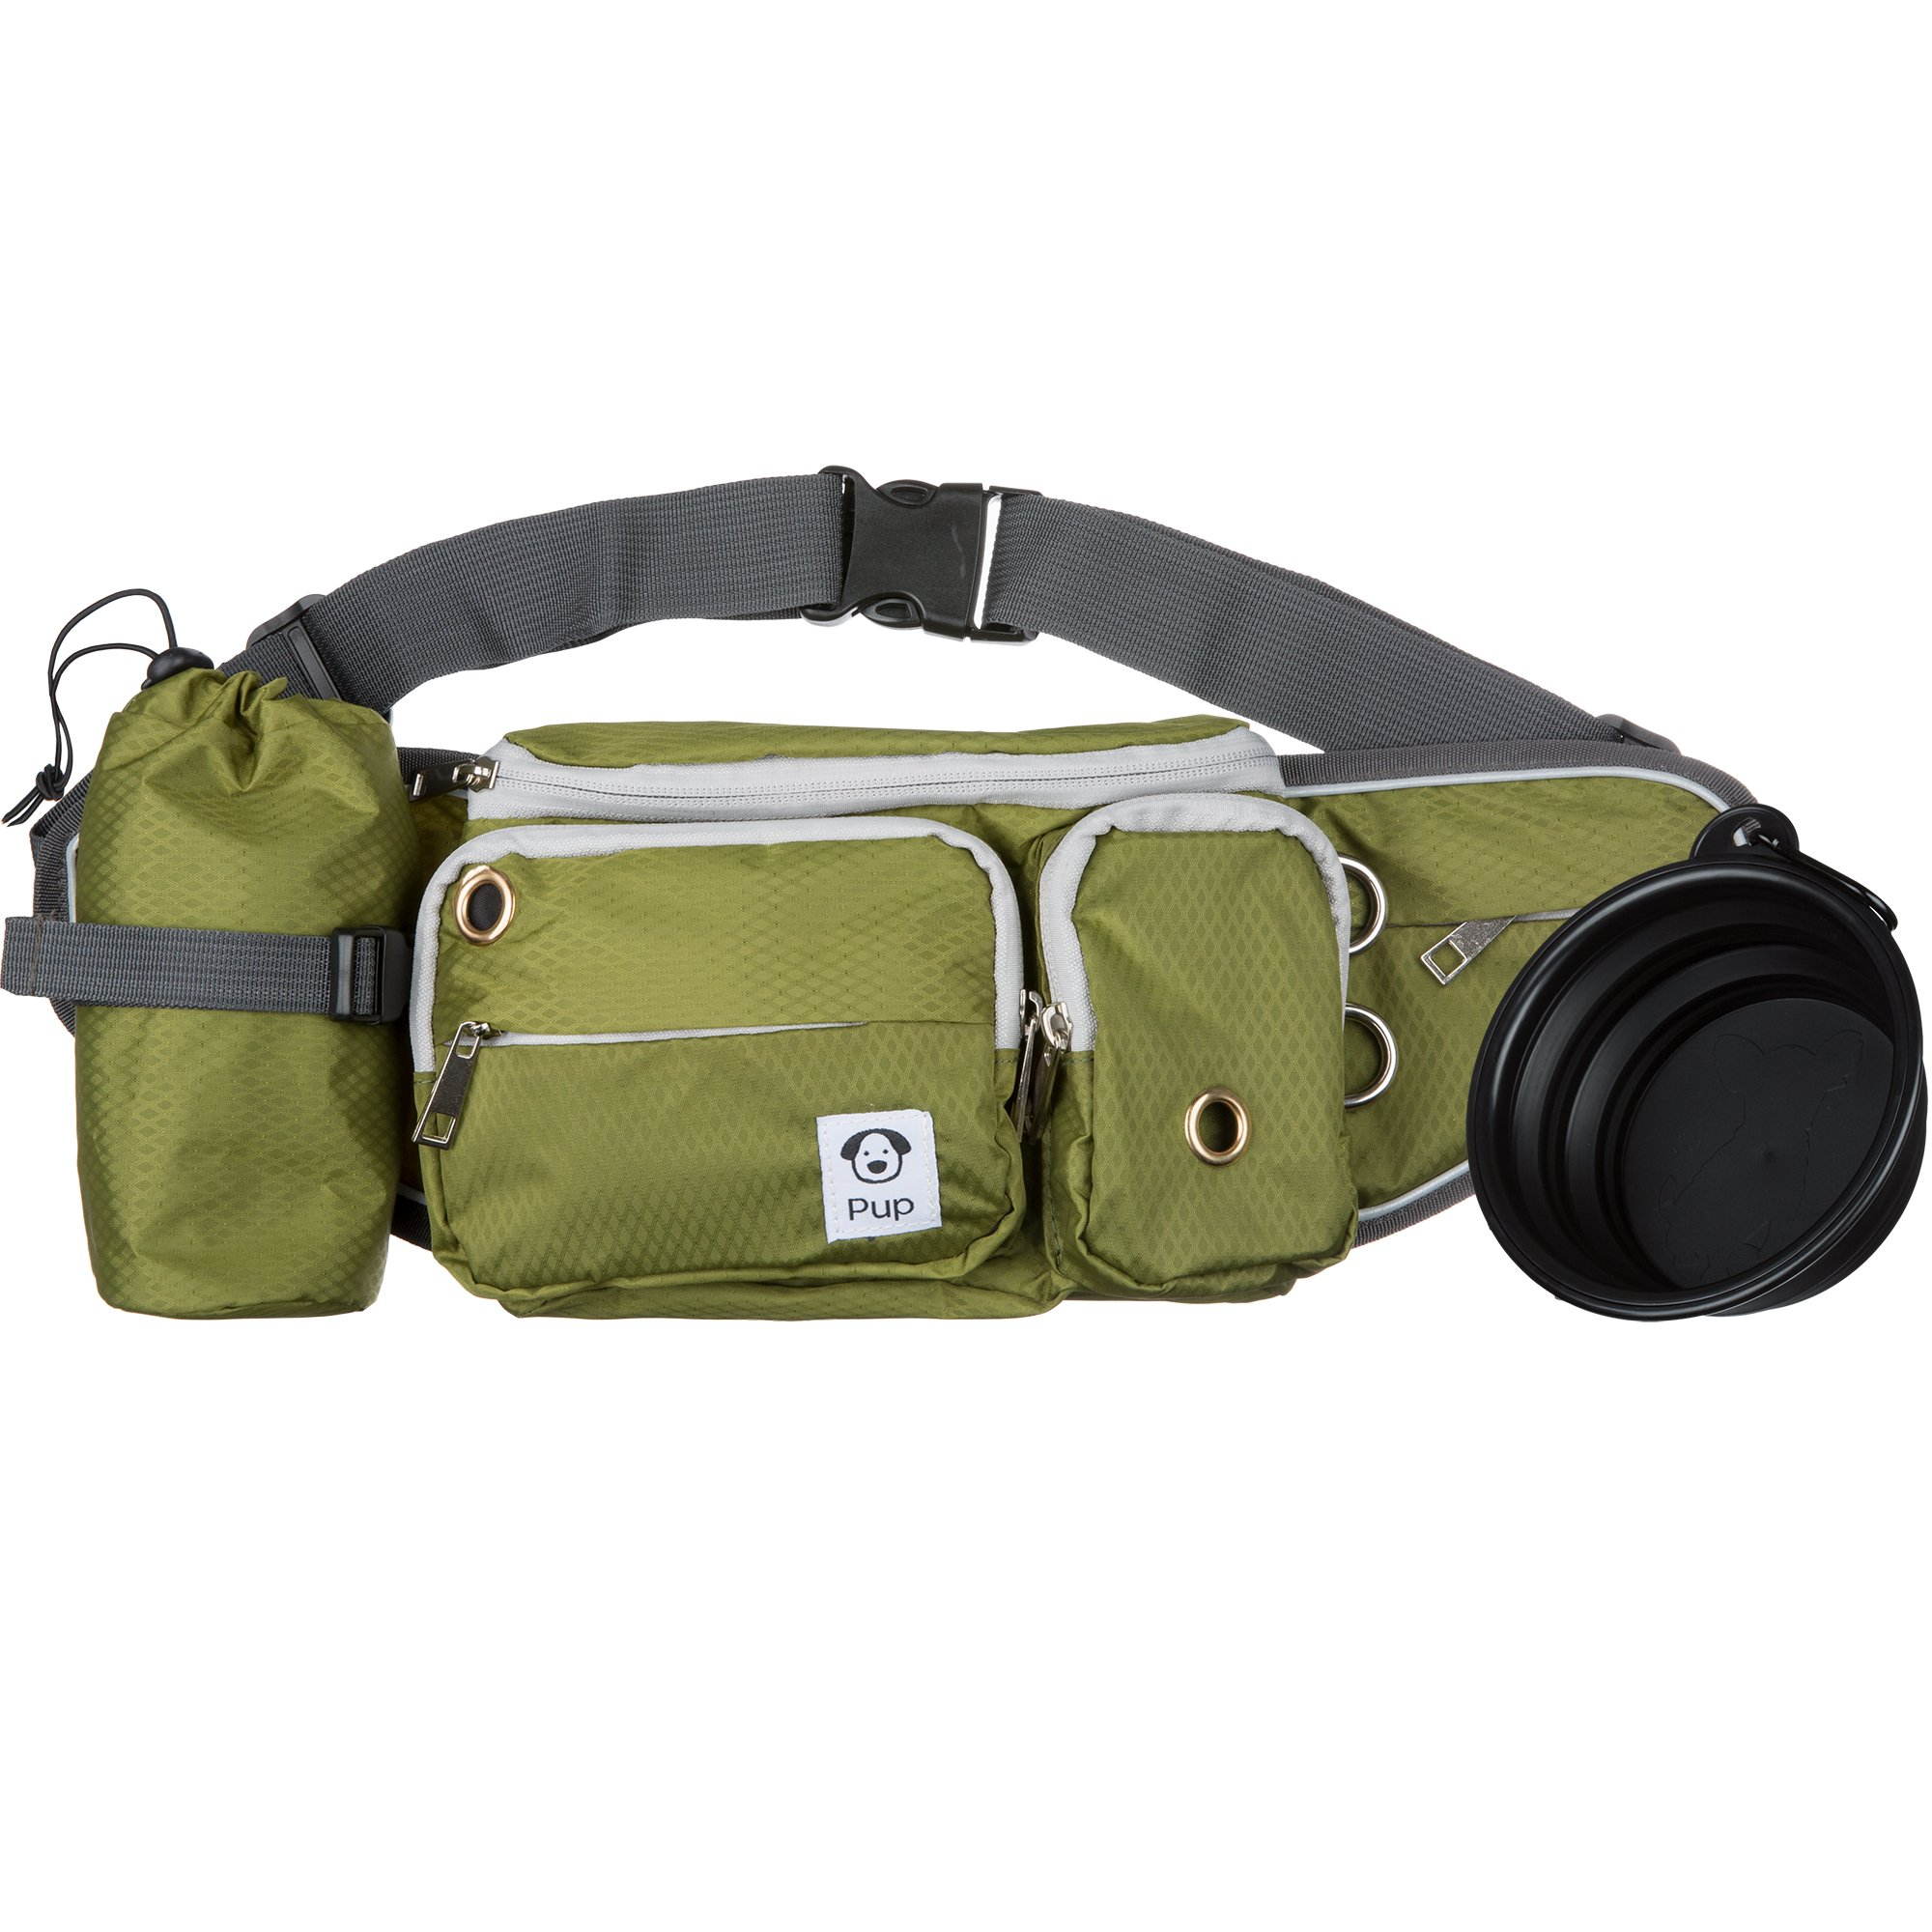 Dog Walk Waist Fanny Pack Treat Pouch with Collapsible Water Bowl and Water Bottle Holder - Small/Medium Dogs